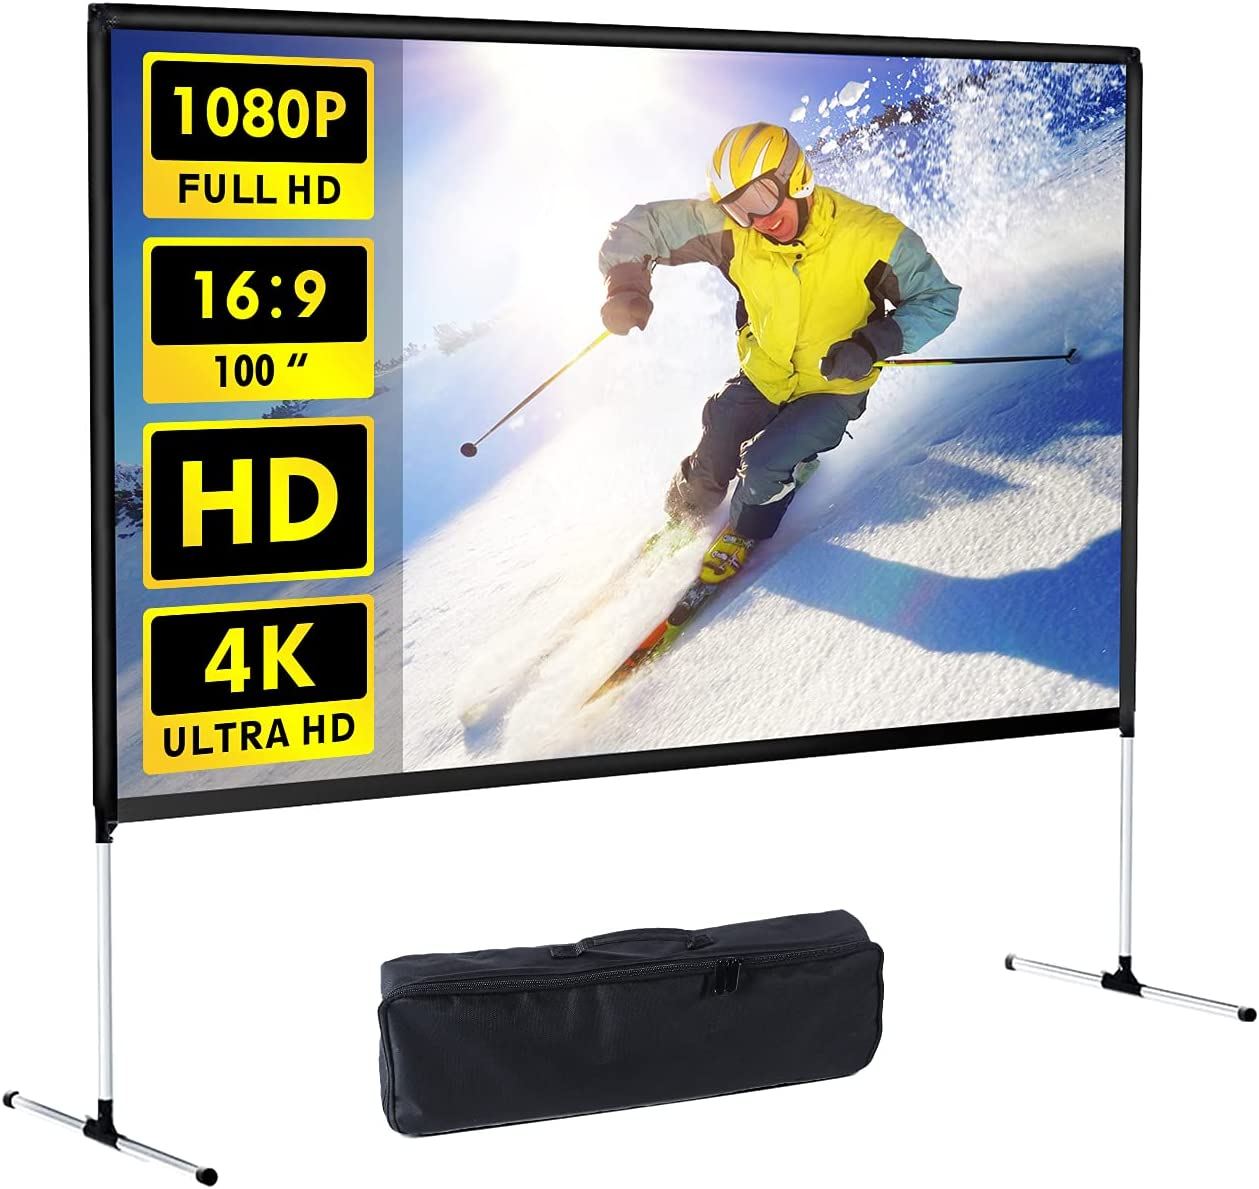 Projector Screen with Stand 100 inch 4K HD 16: 9 Indoor Outdoor Home Theater Backyard Cinema Wrinkle-Free Design and Carry Bag Projection for Movie, Meeting